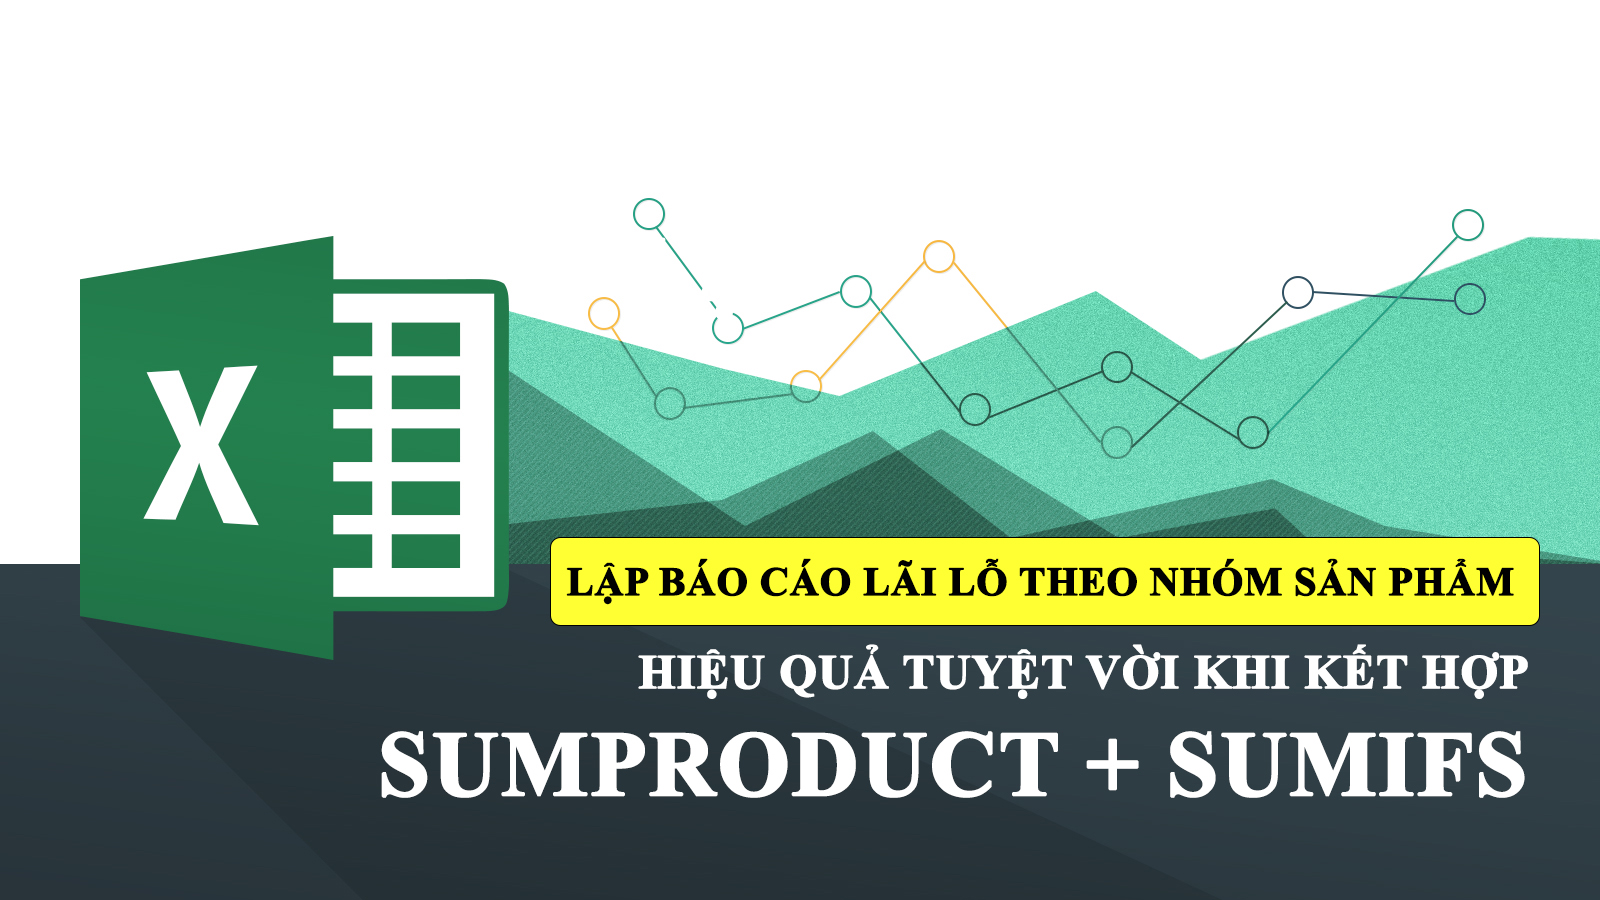 EXCEL - SUMPRODUCT + SUMIFS.jpg